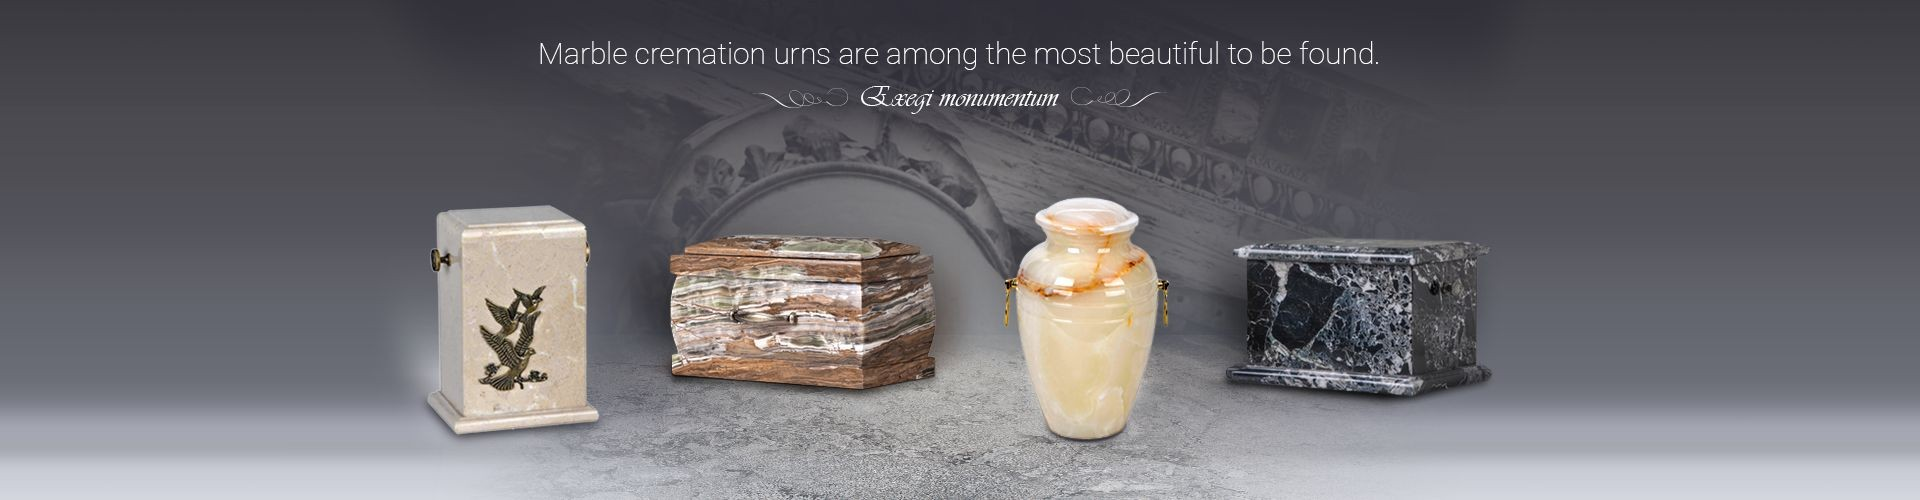 Marble cremation urns are among the most beautiful to be found